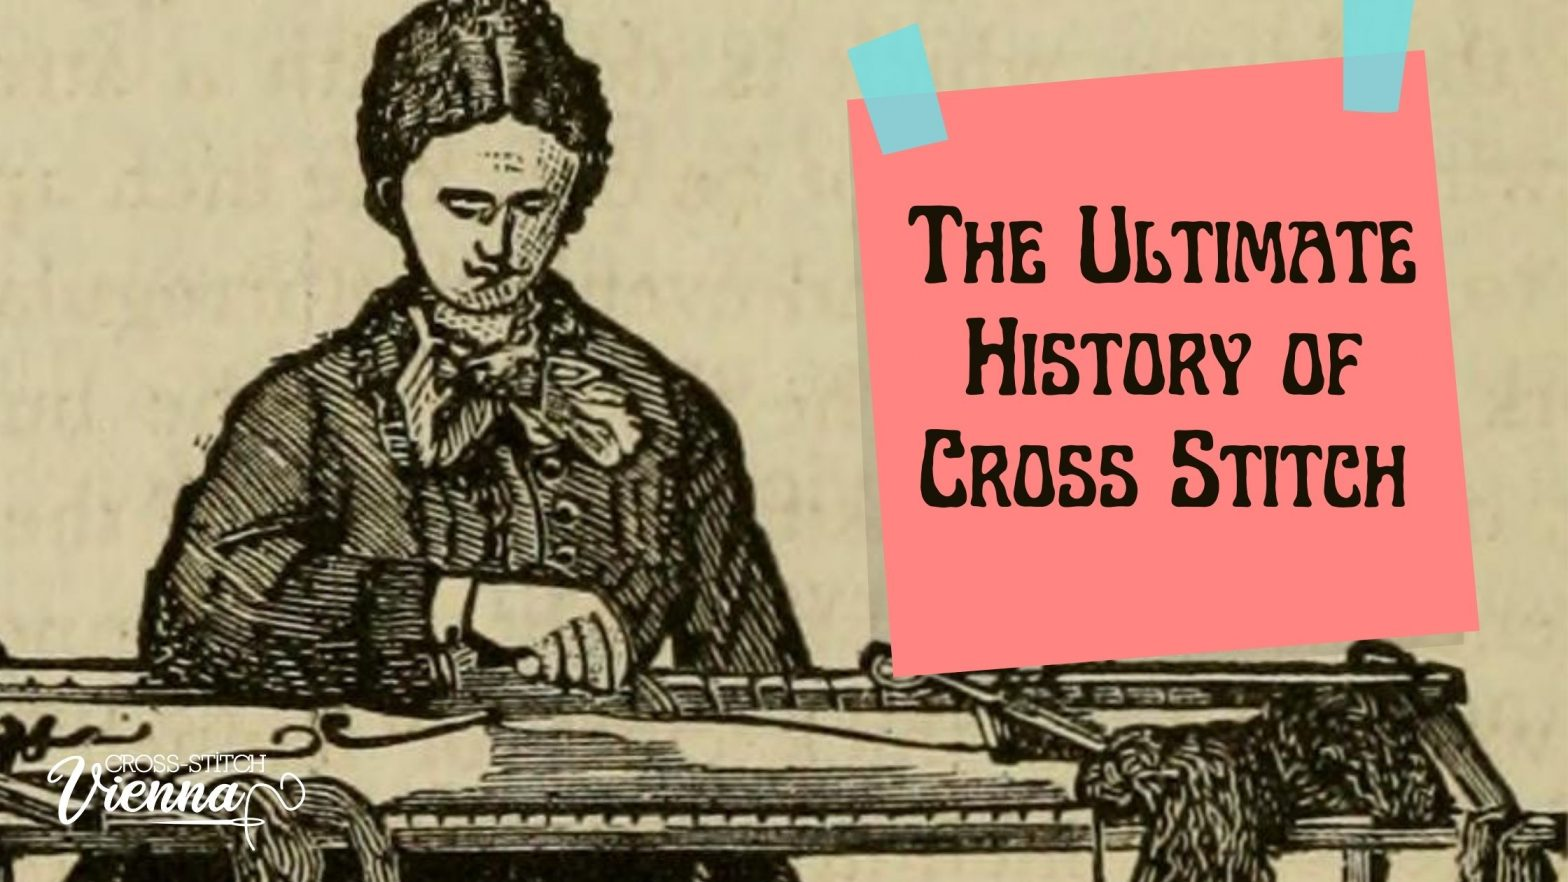 The Ultimate History: Where Does Cross Stitch Come From?